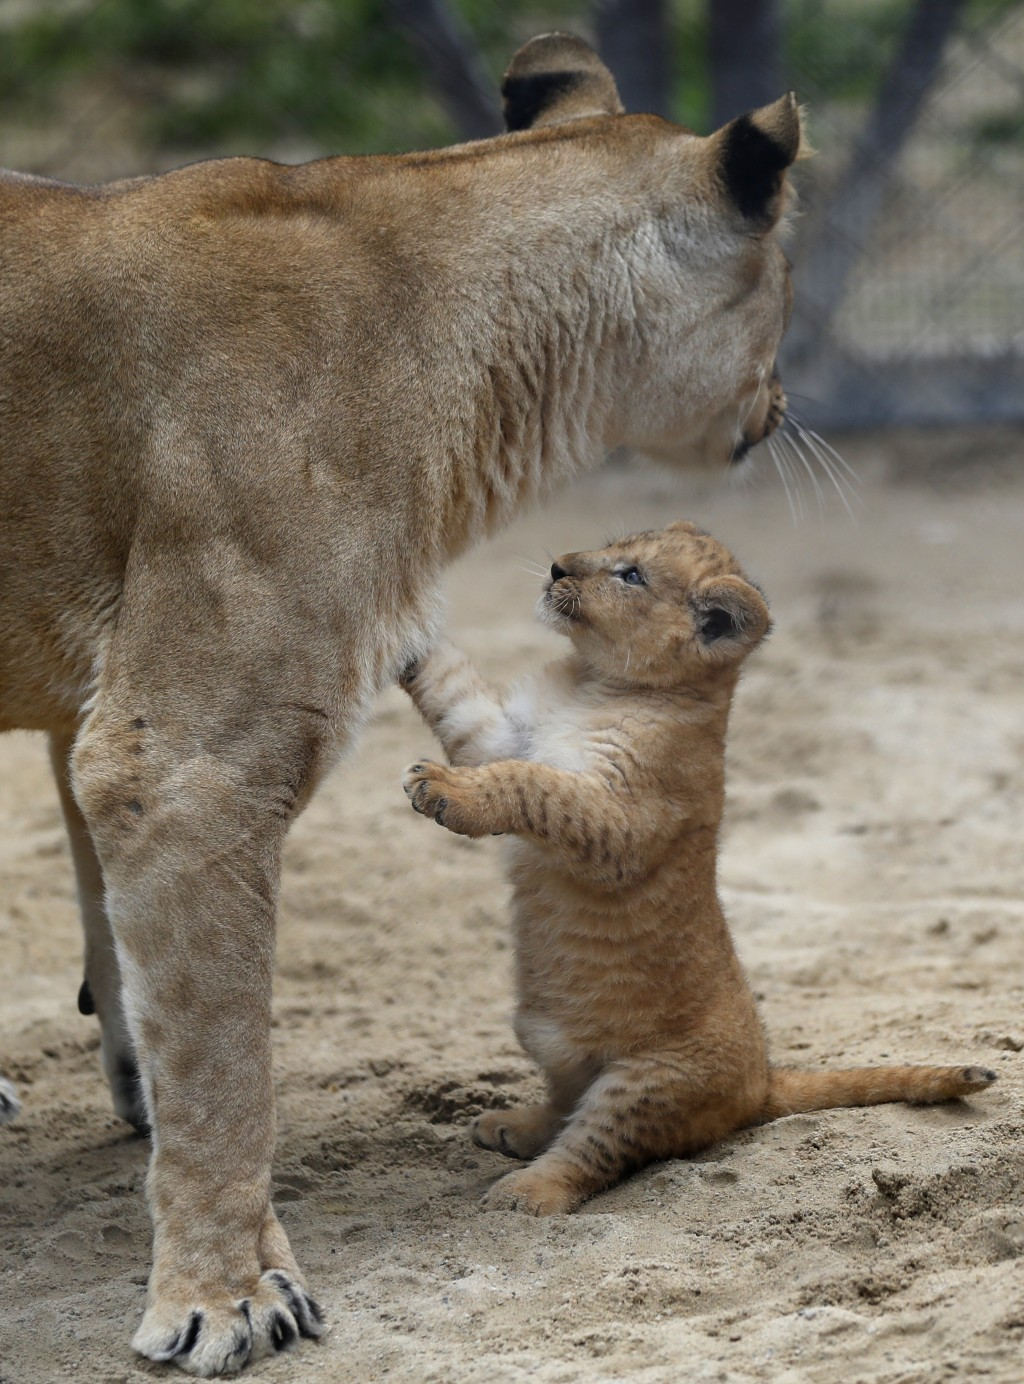 A Barbary lion Khalila walks with one of her cubs in their enclosure at the zoo in Dvur Kralove, Czech Republic, Thursday, Sept. 10, 2020. Three Barba...